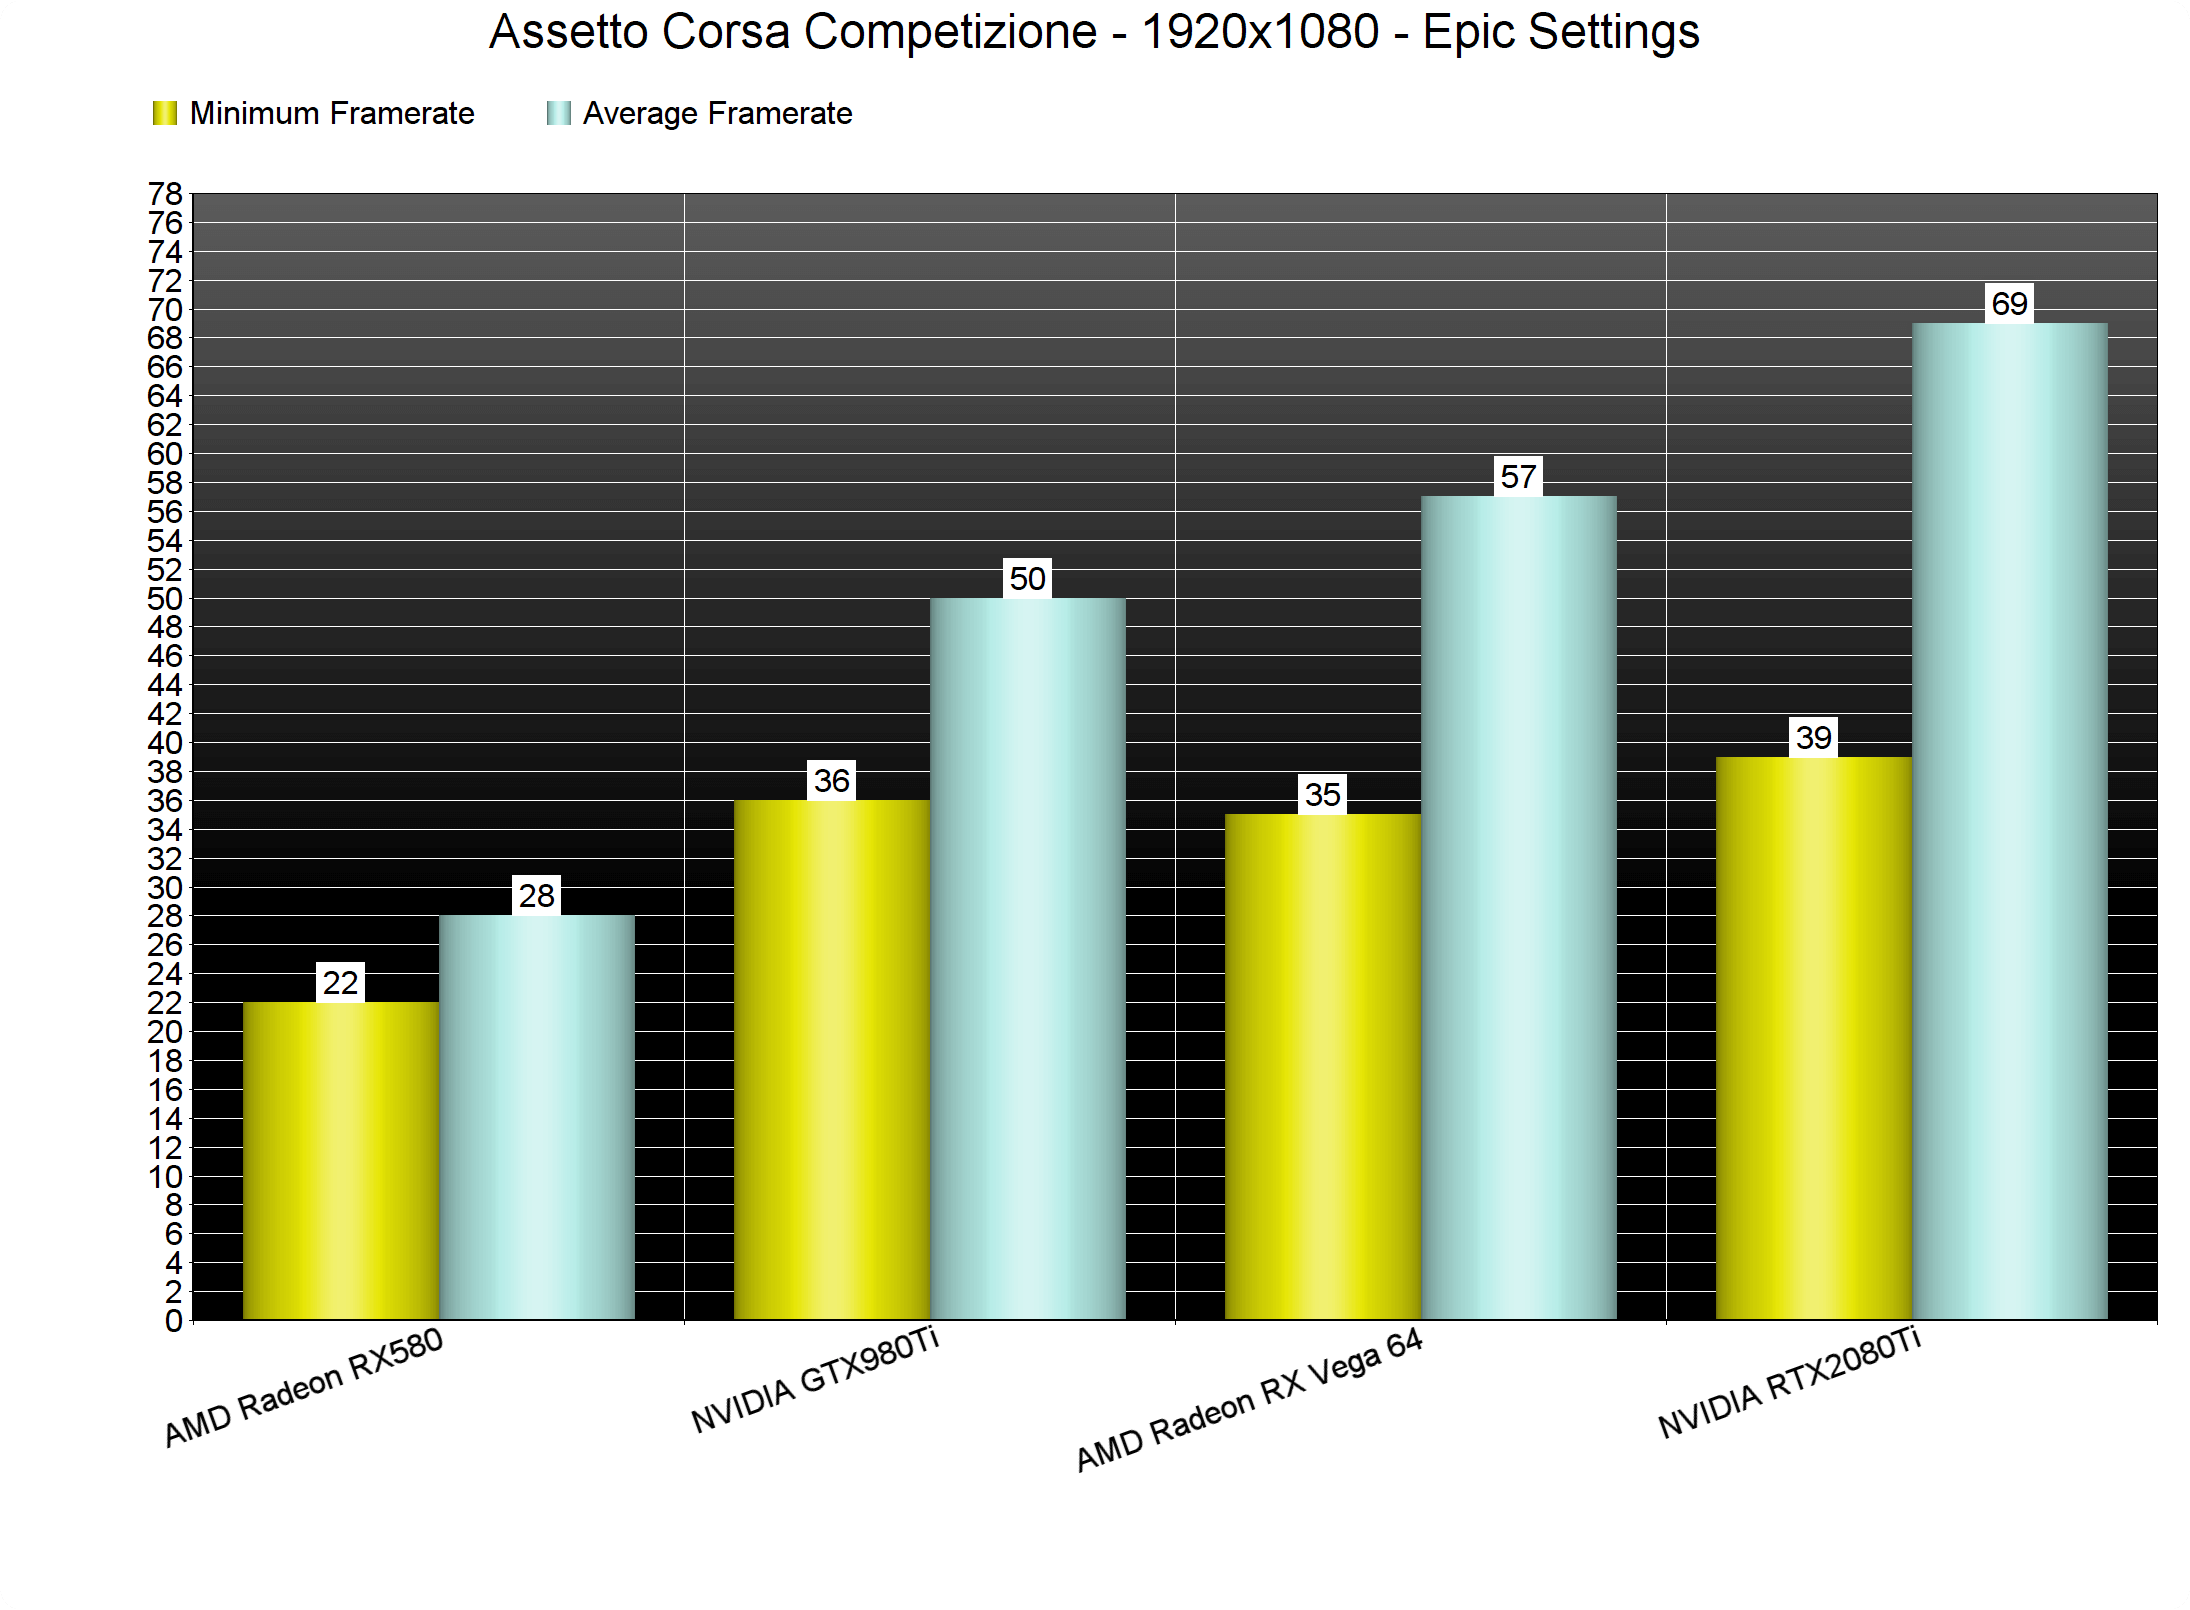 Assetto Corsa Competizione PC Performance Analysis - DSOGaming